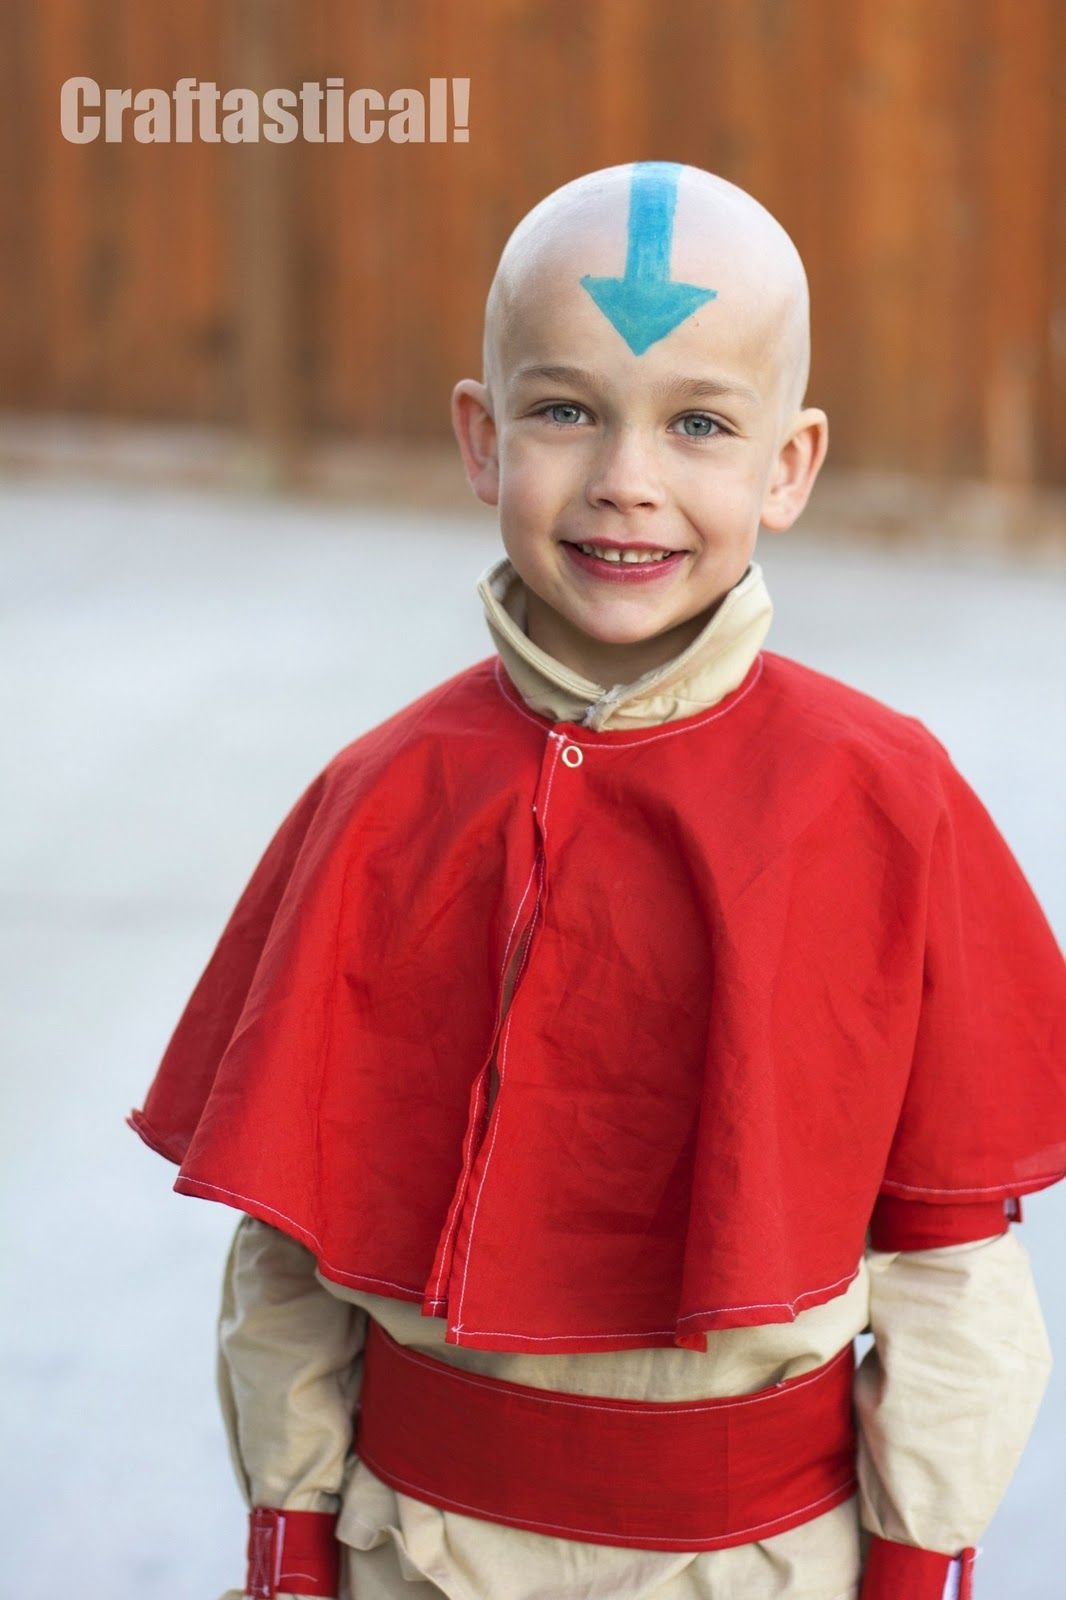 aang from avatar the last airbender halloween costume